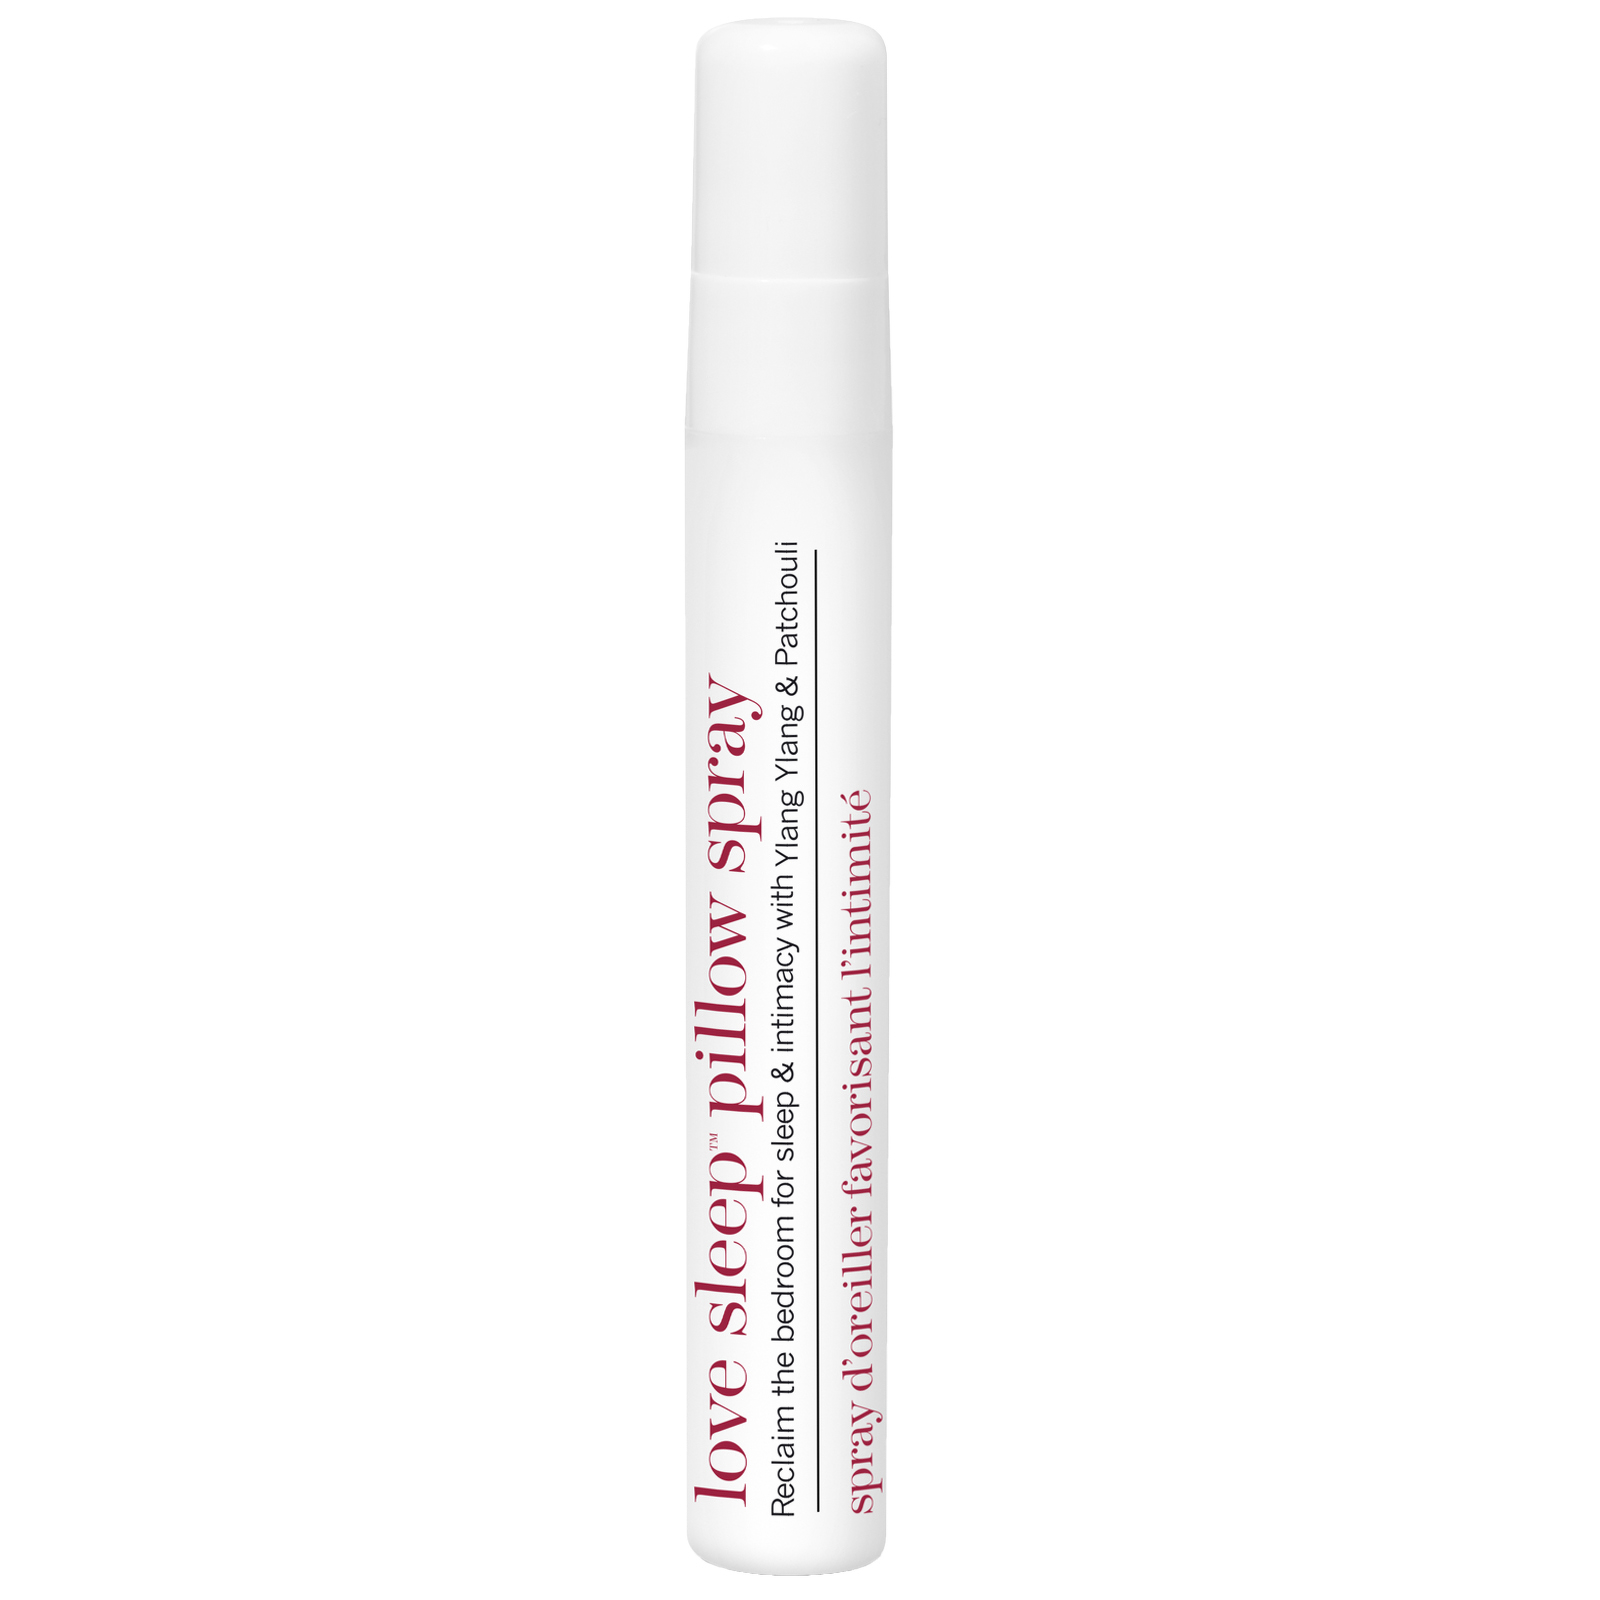 thisworks Sleep Love Sleep Pillow Spray 10ml